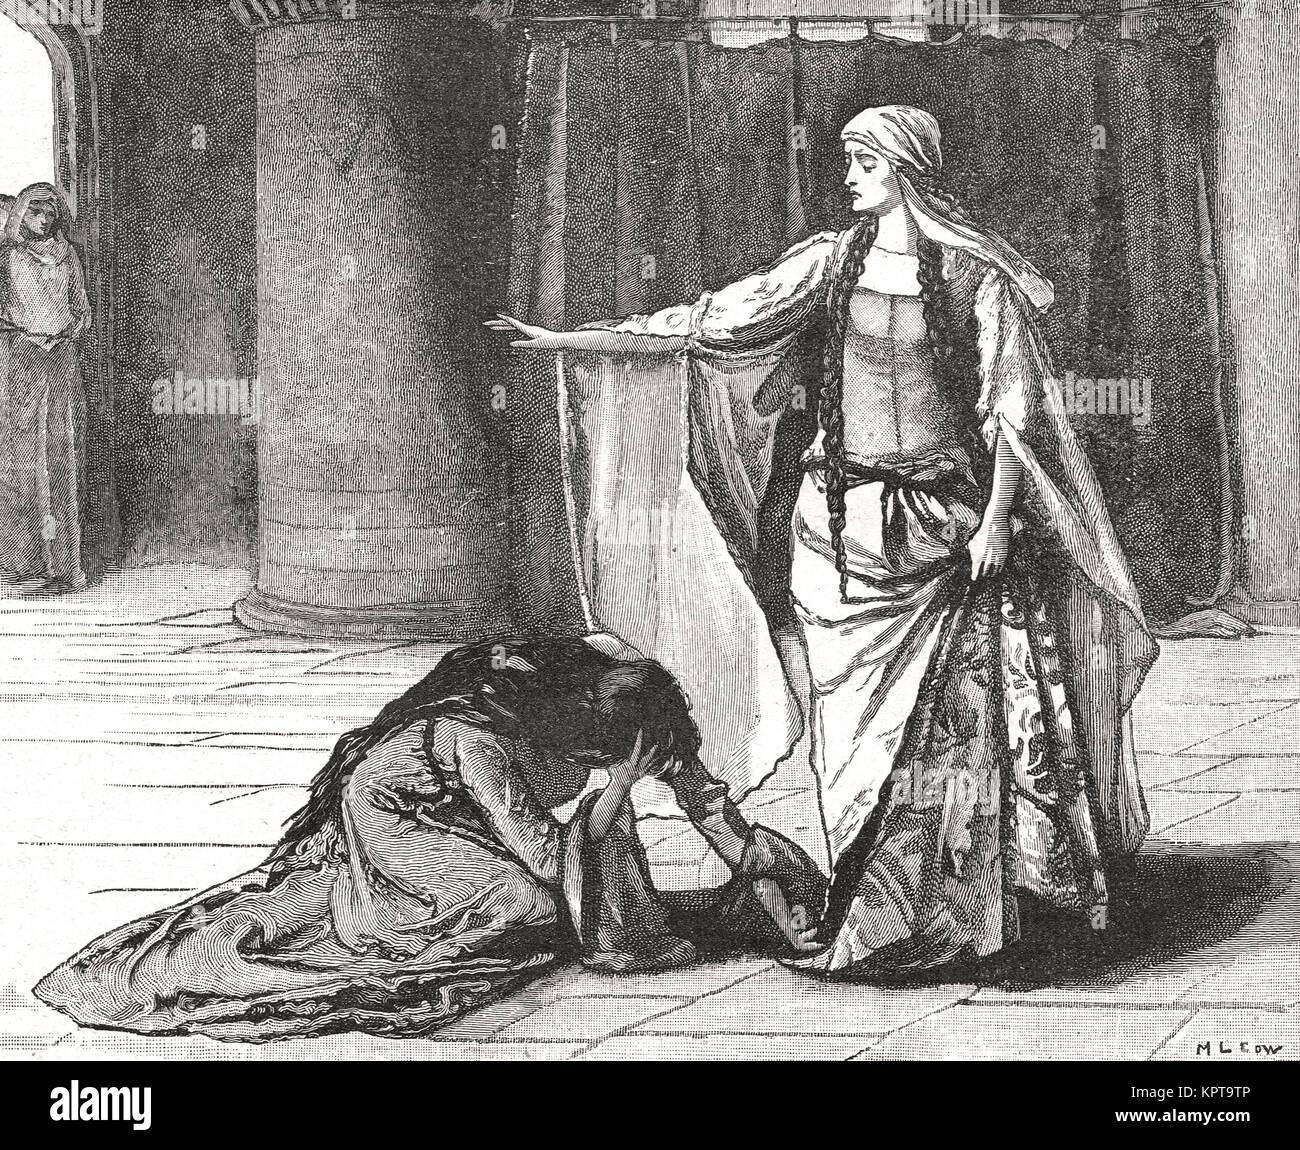 Empress Matilda, refusing to release Stephen of Blois to his wife Matilda I (or Maud) of Boulogne - Stock Image